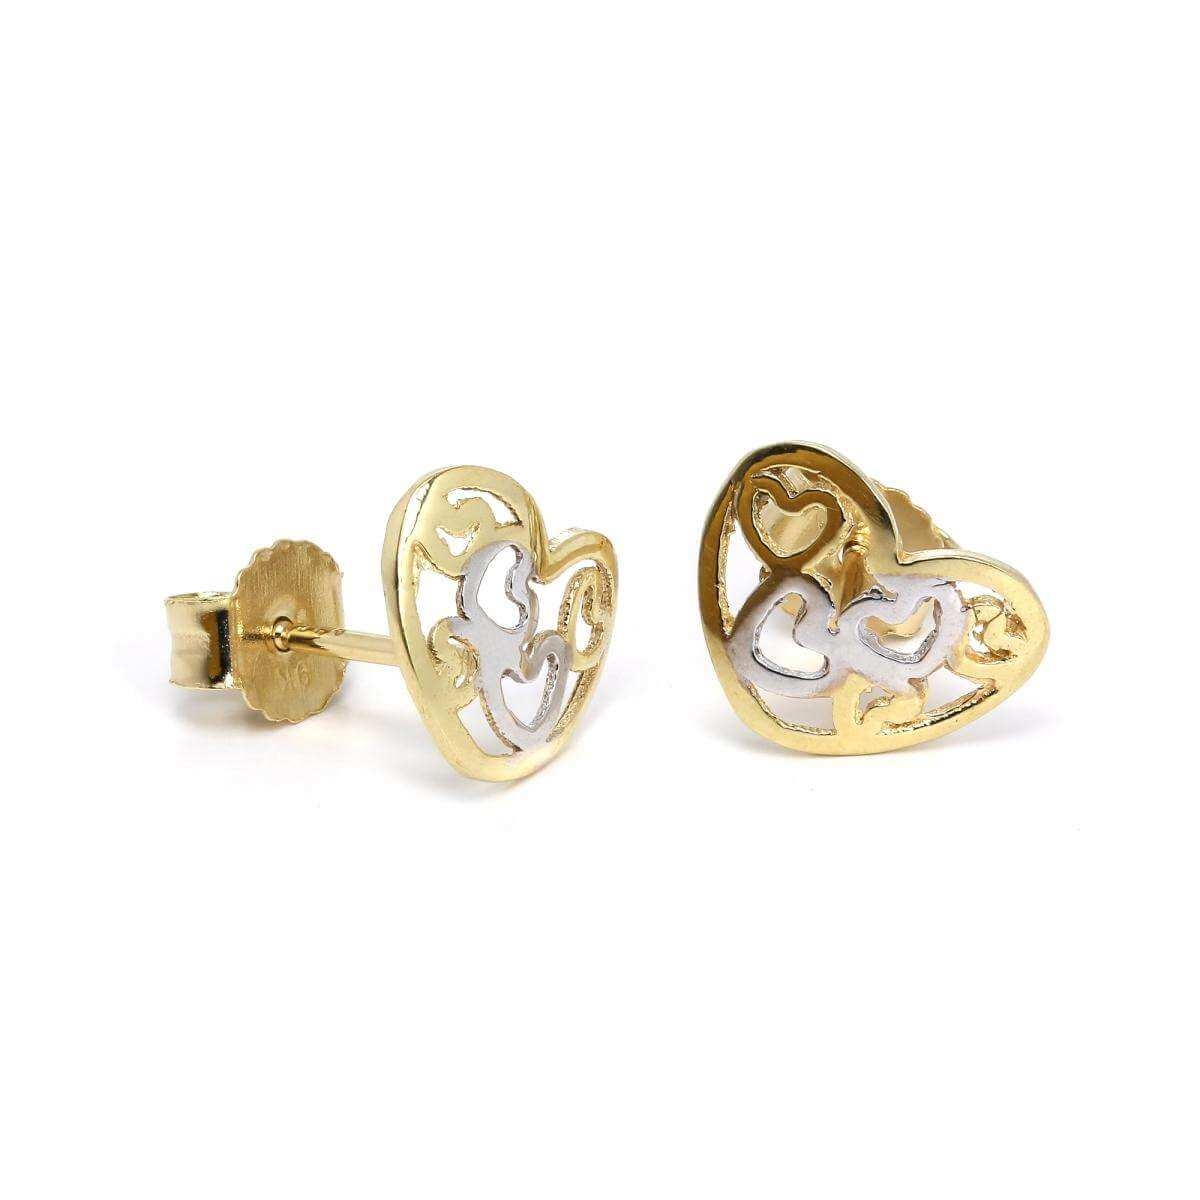 9ct Yellow & White Gold Open Heart Stud Earrings